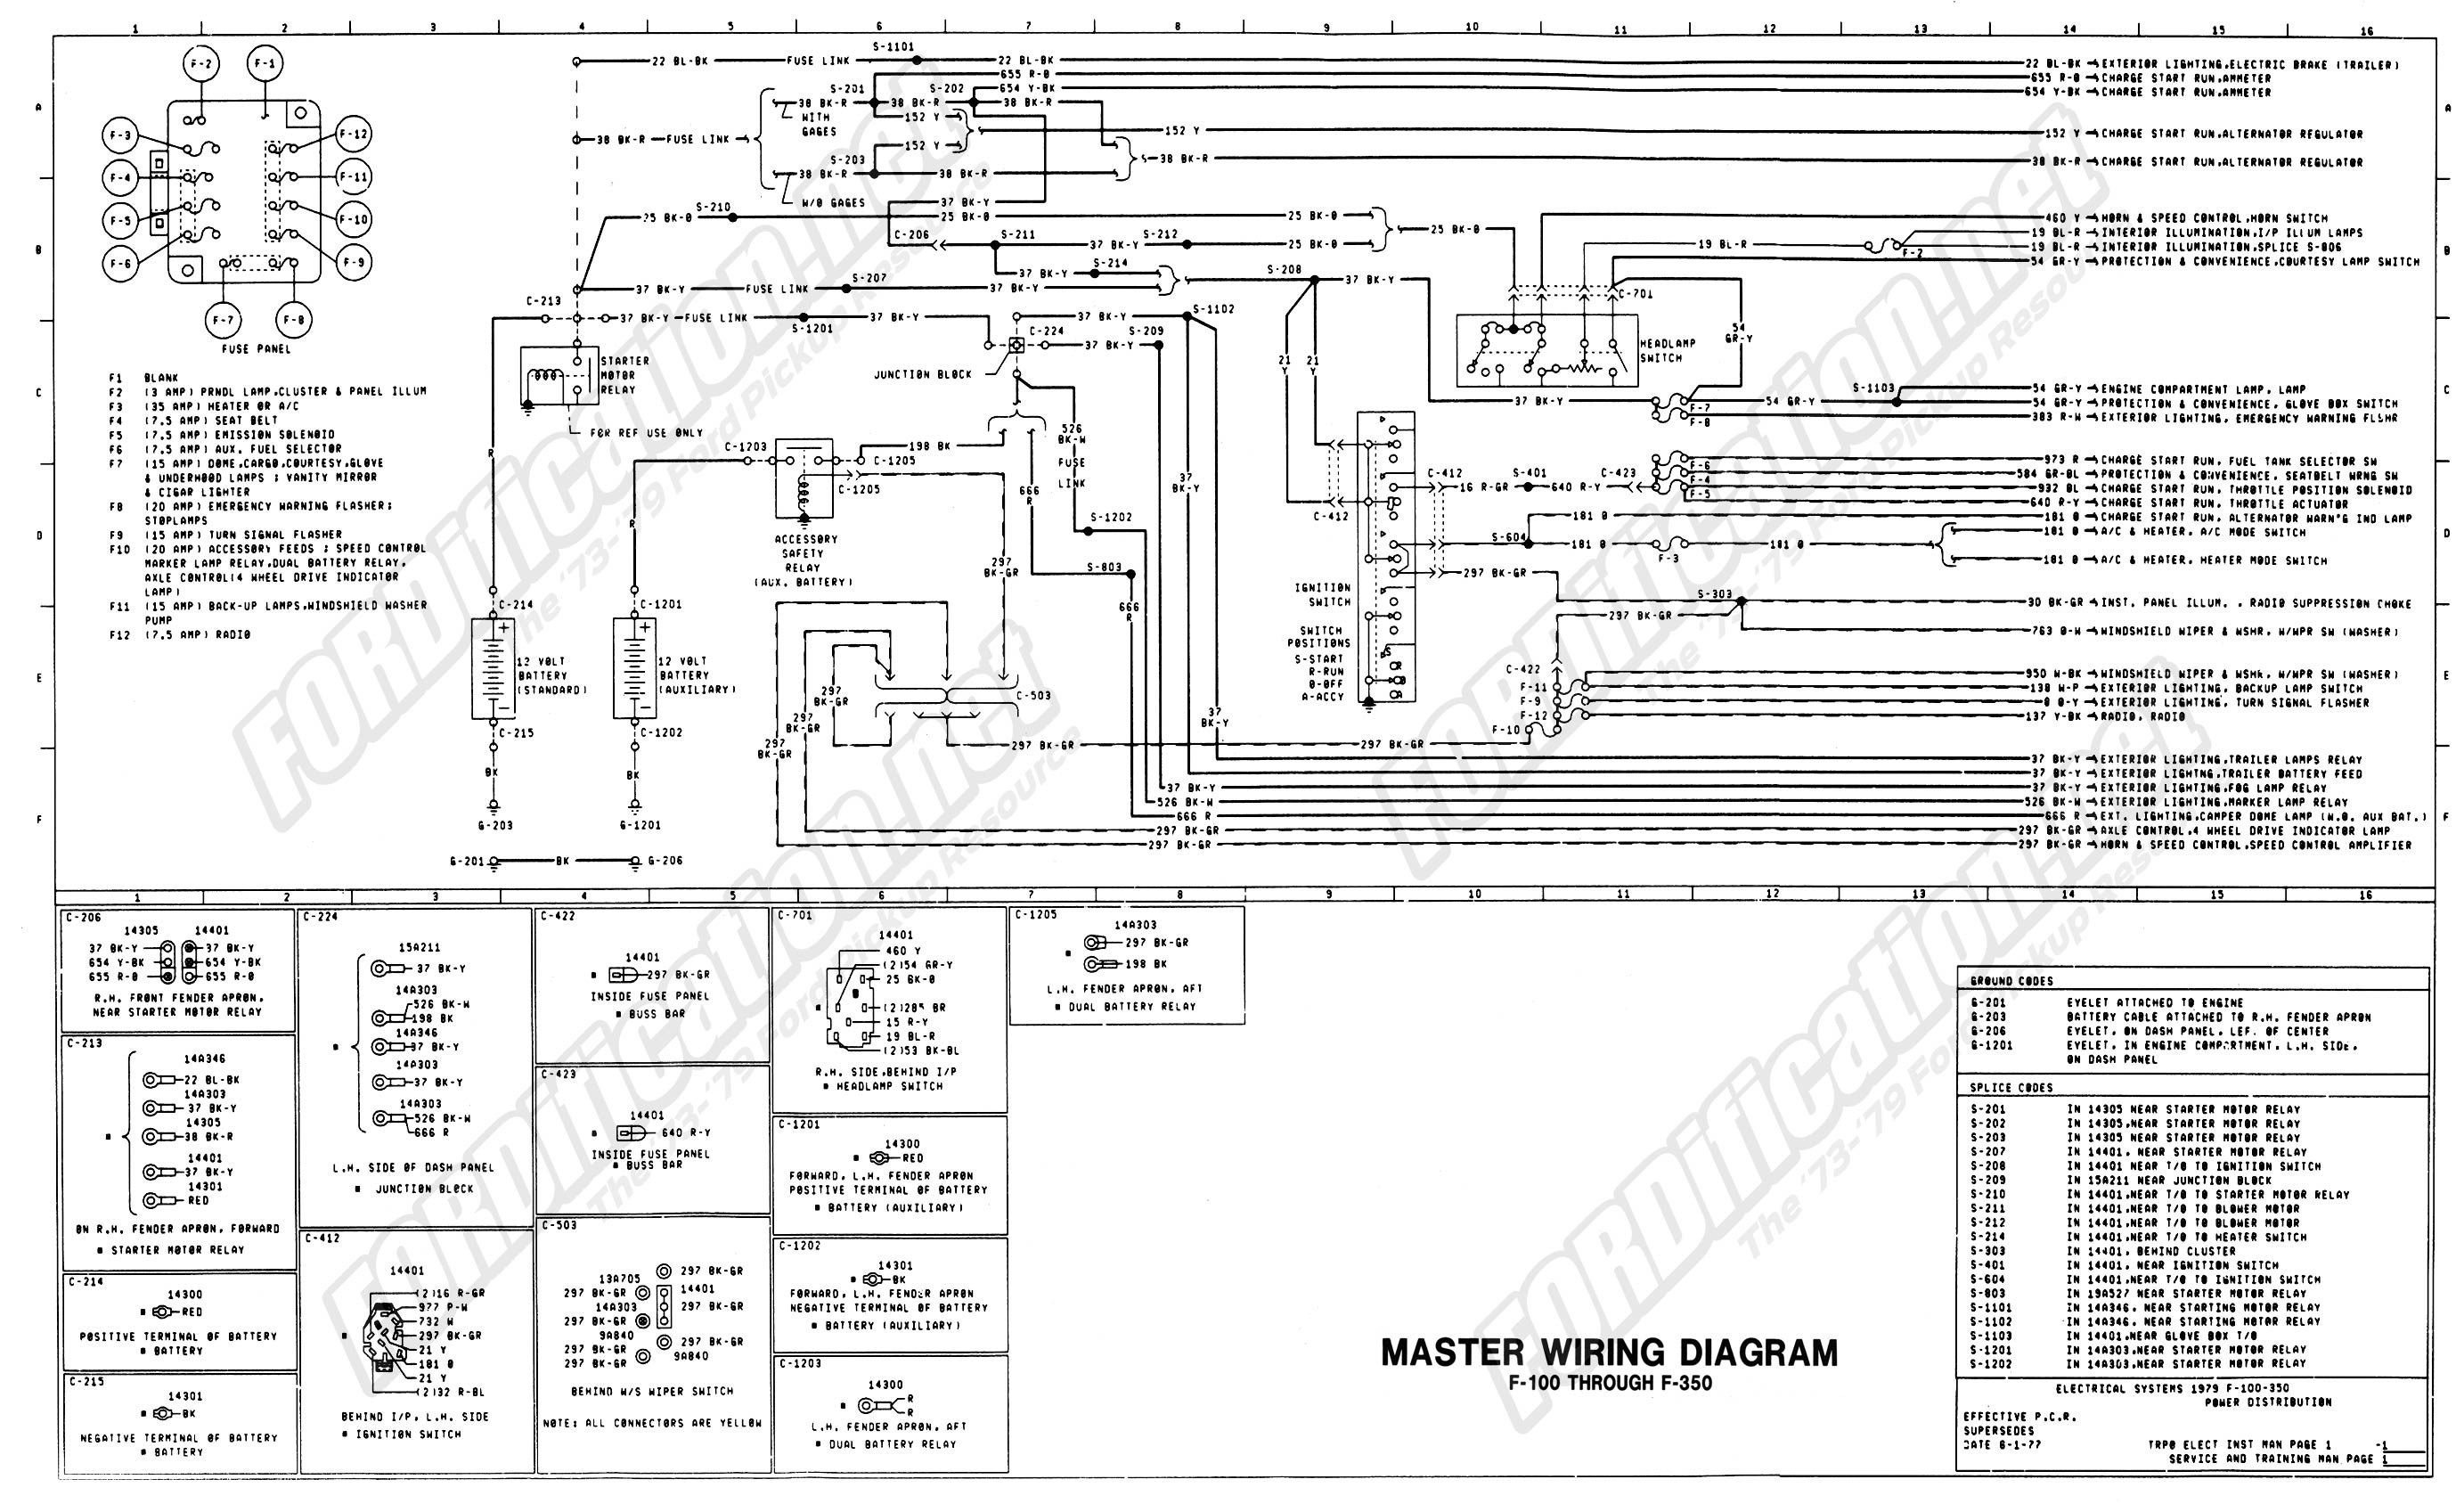 Wiring Diagram ford F150 Wiring Diagram 1979 ford F150